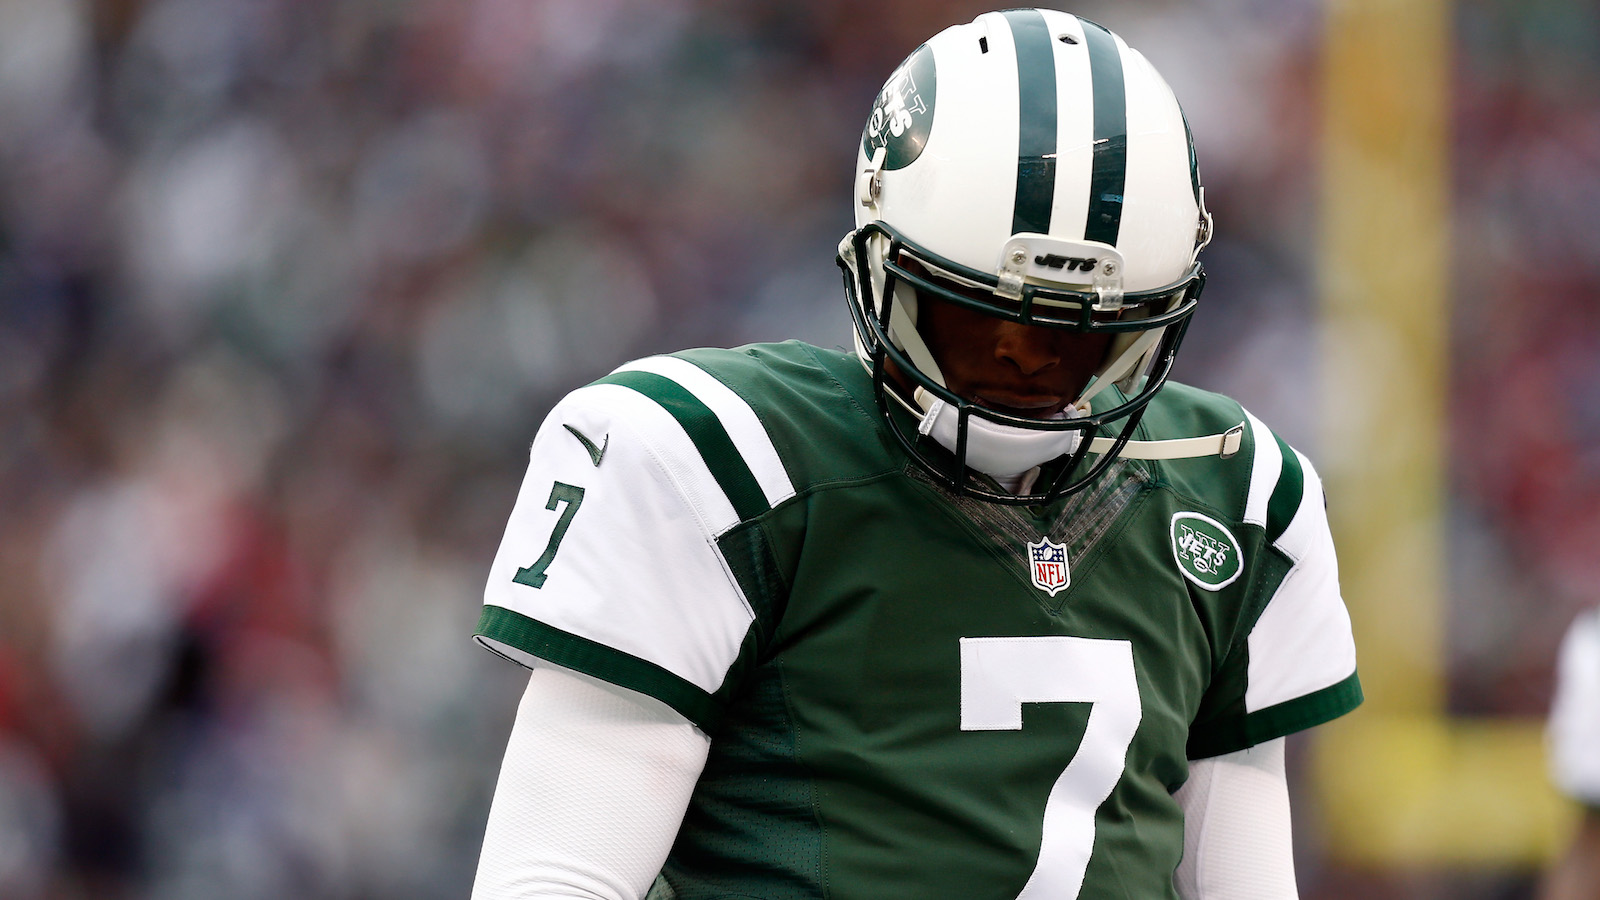 Jets coach Todd Bowles sounds unsure Geno Smith will be the backup QB